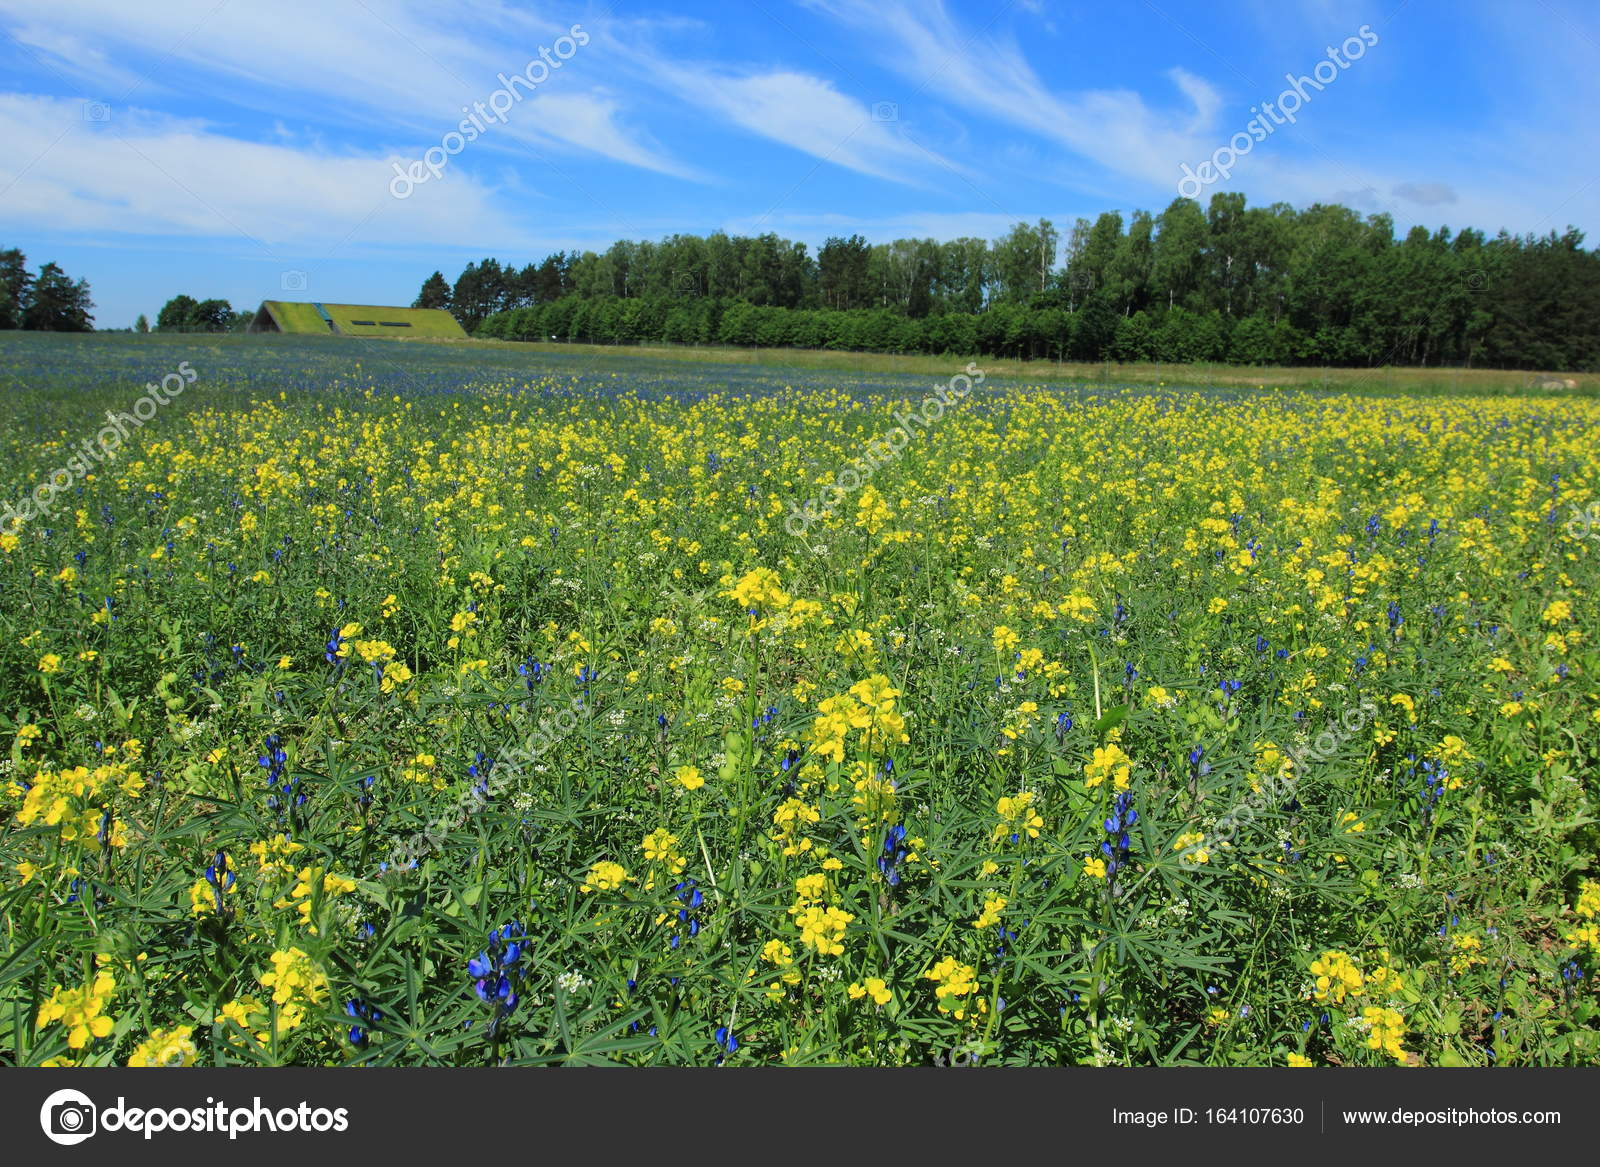 Blooming Crops In Summer Season Stock Photo Bogdanwankowicz